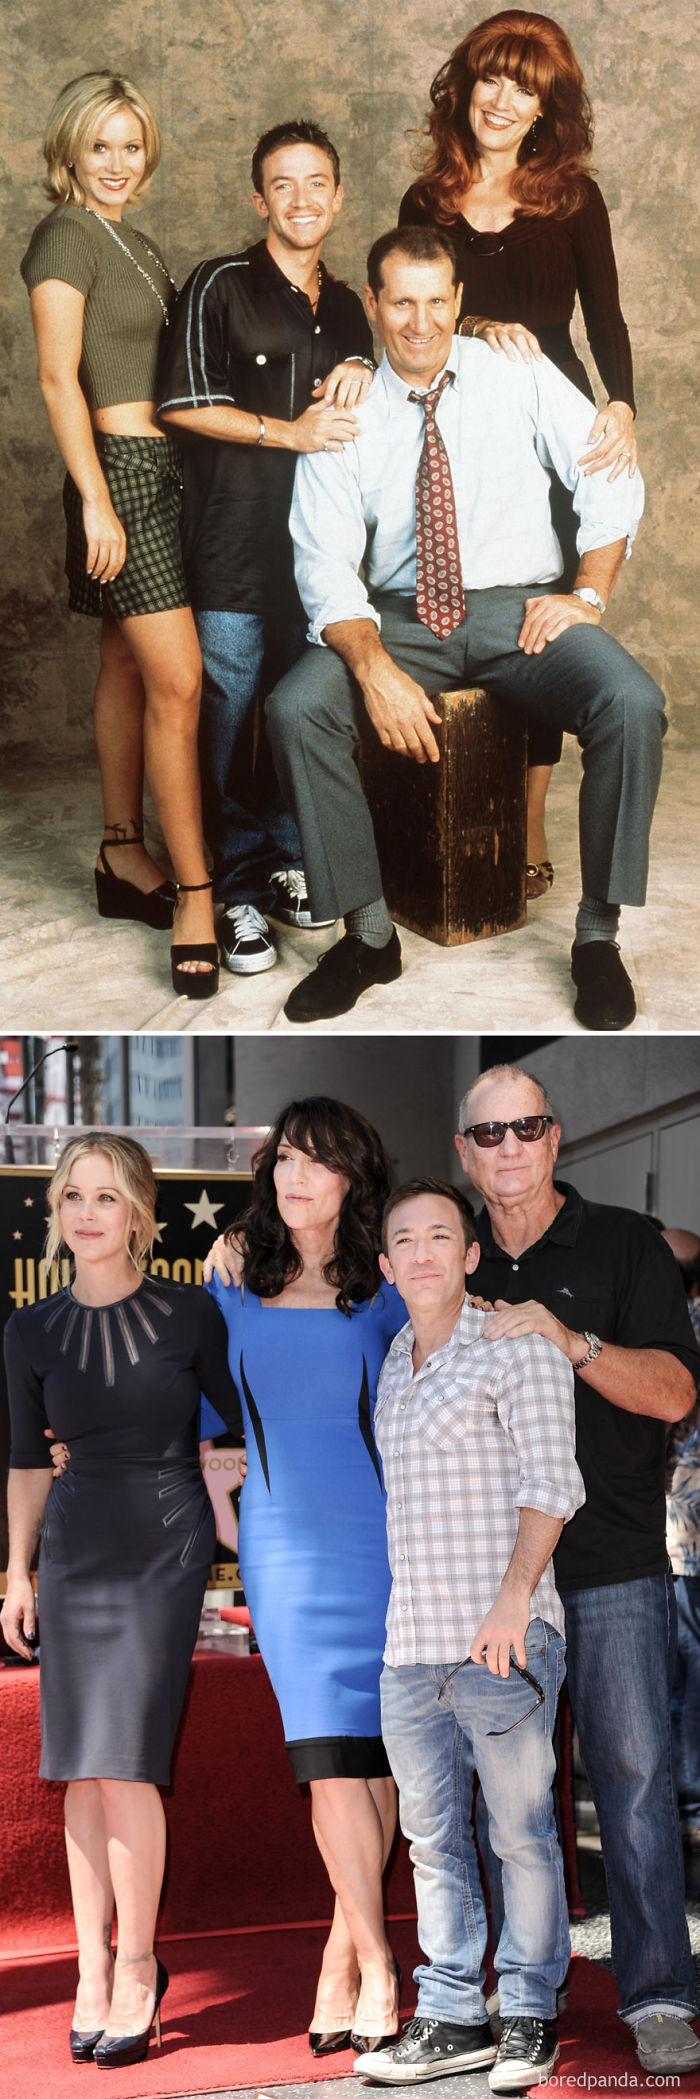 Married With Children 1987 Vs. 2014